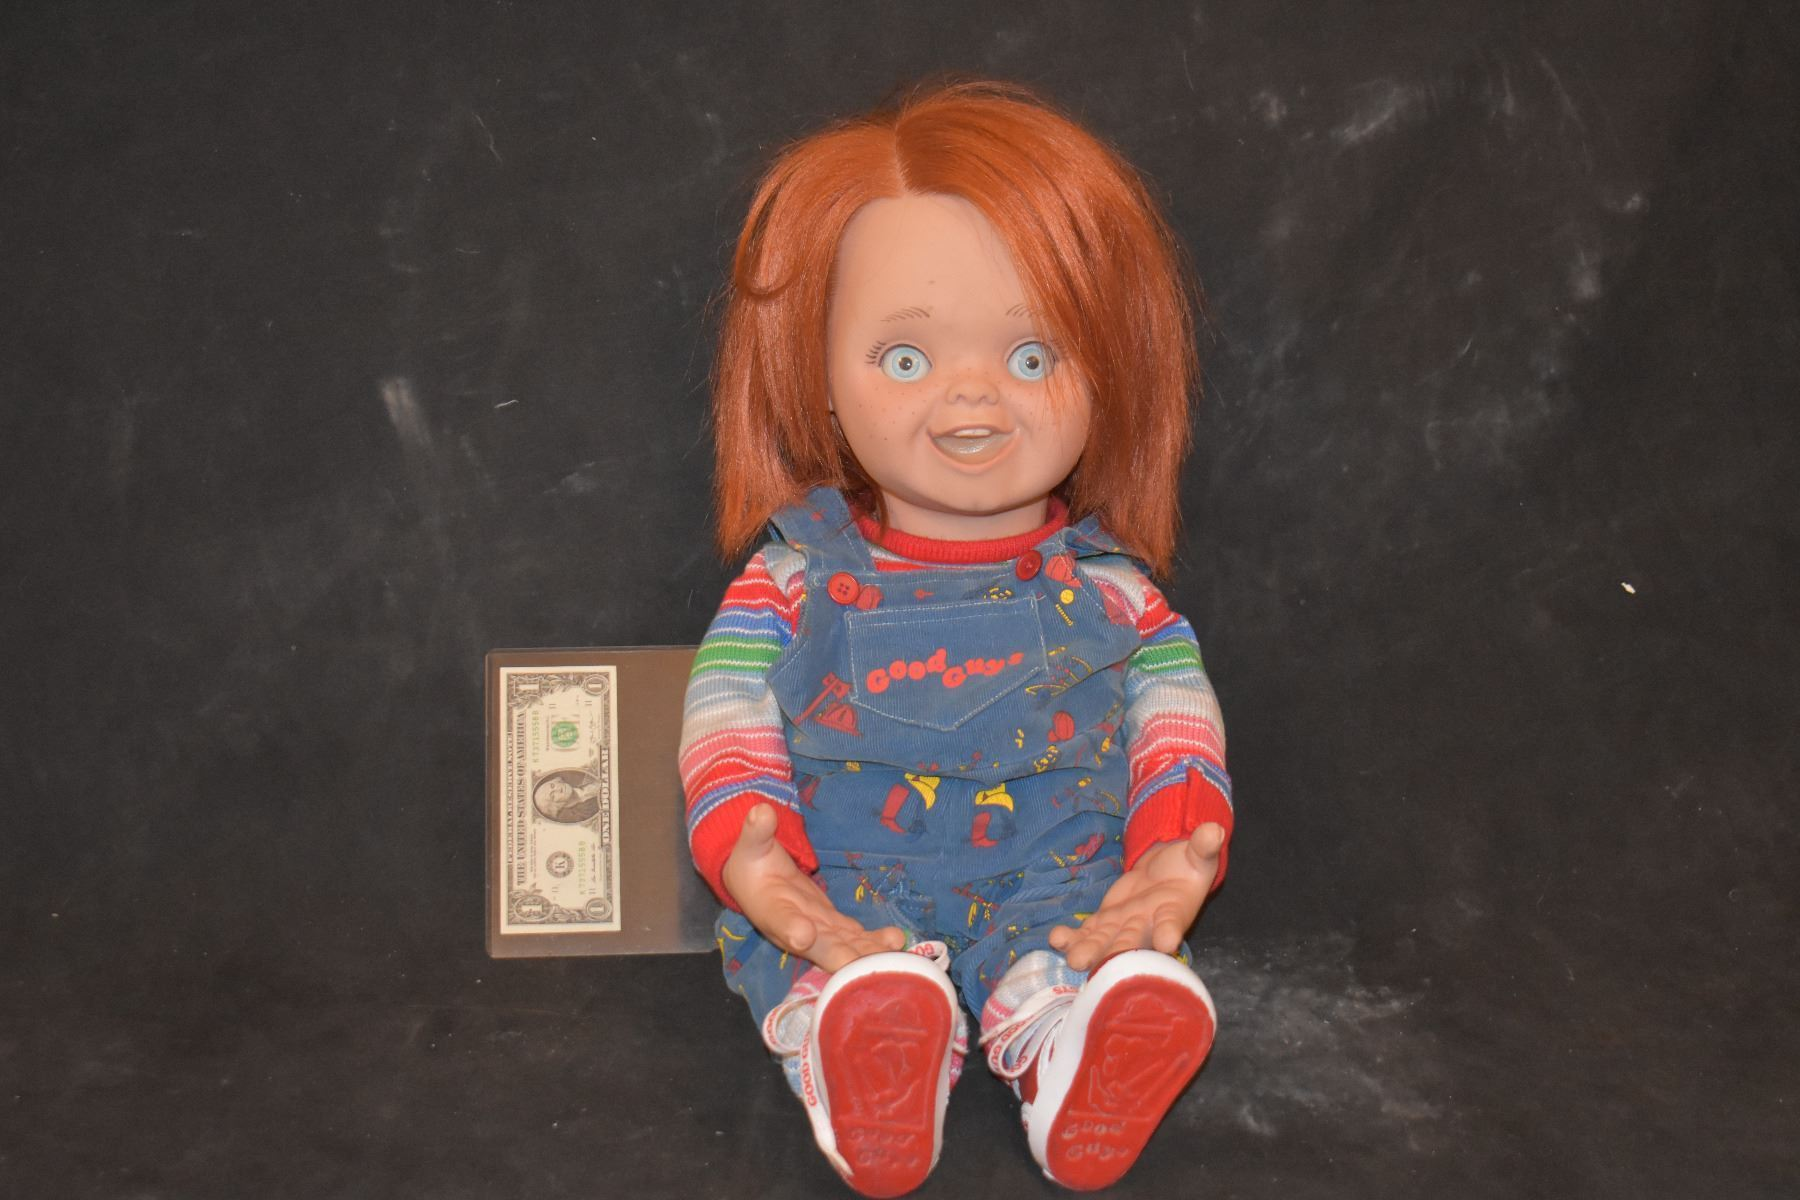 Image 1 CURSE OF CHUCKY SCREEN MATCHED COMPLETE ANIMATRONIC GOOD GUY PUPPET A TRUE MODERN